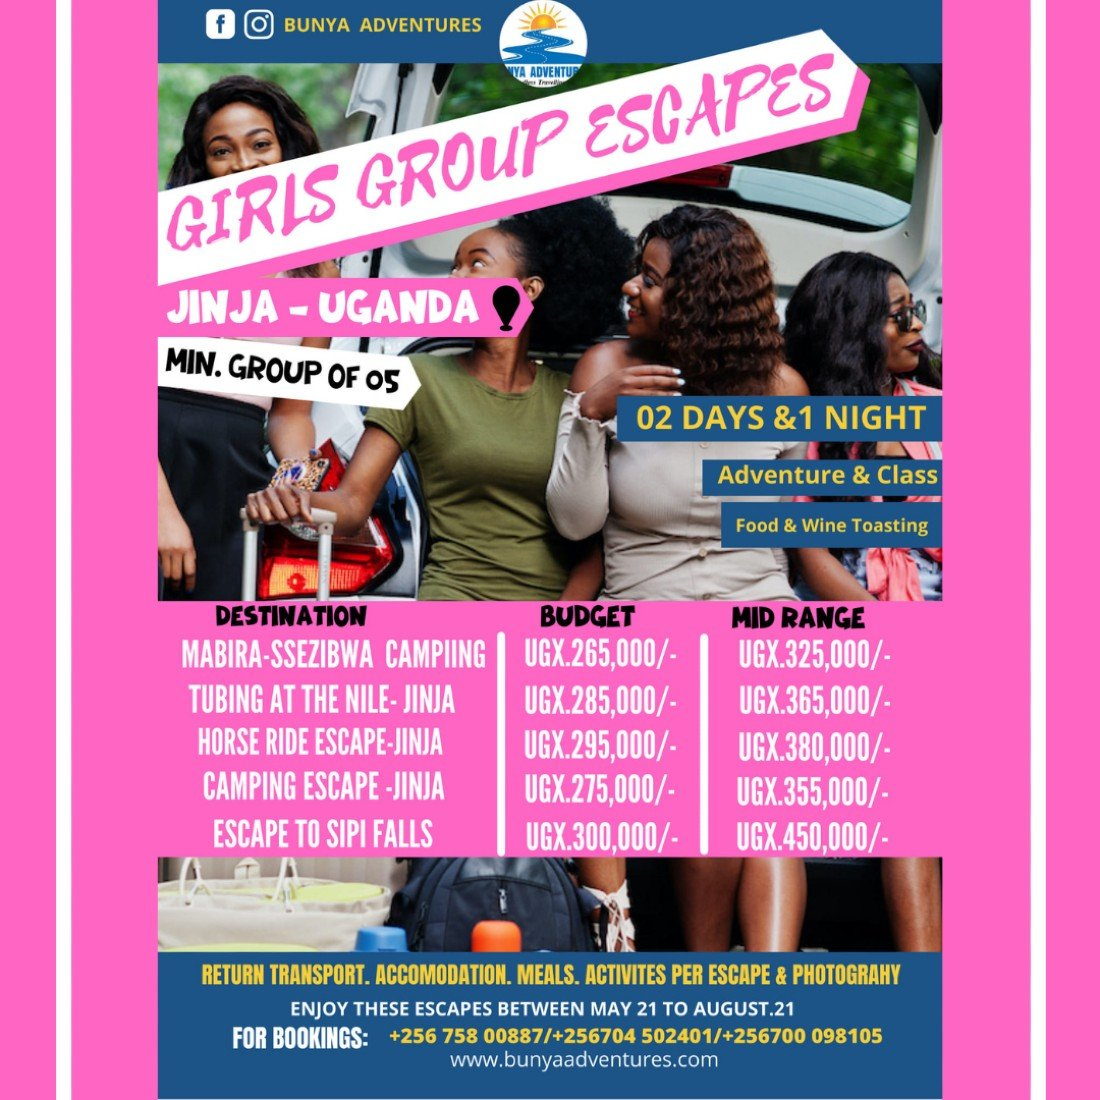 Girls group escapes in uganda   Event in Jinja   AllEvents.in